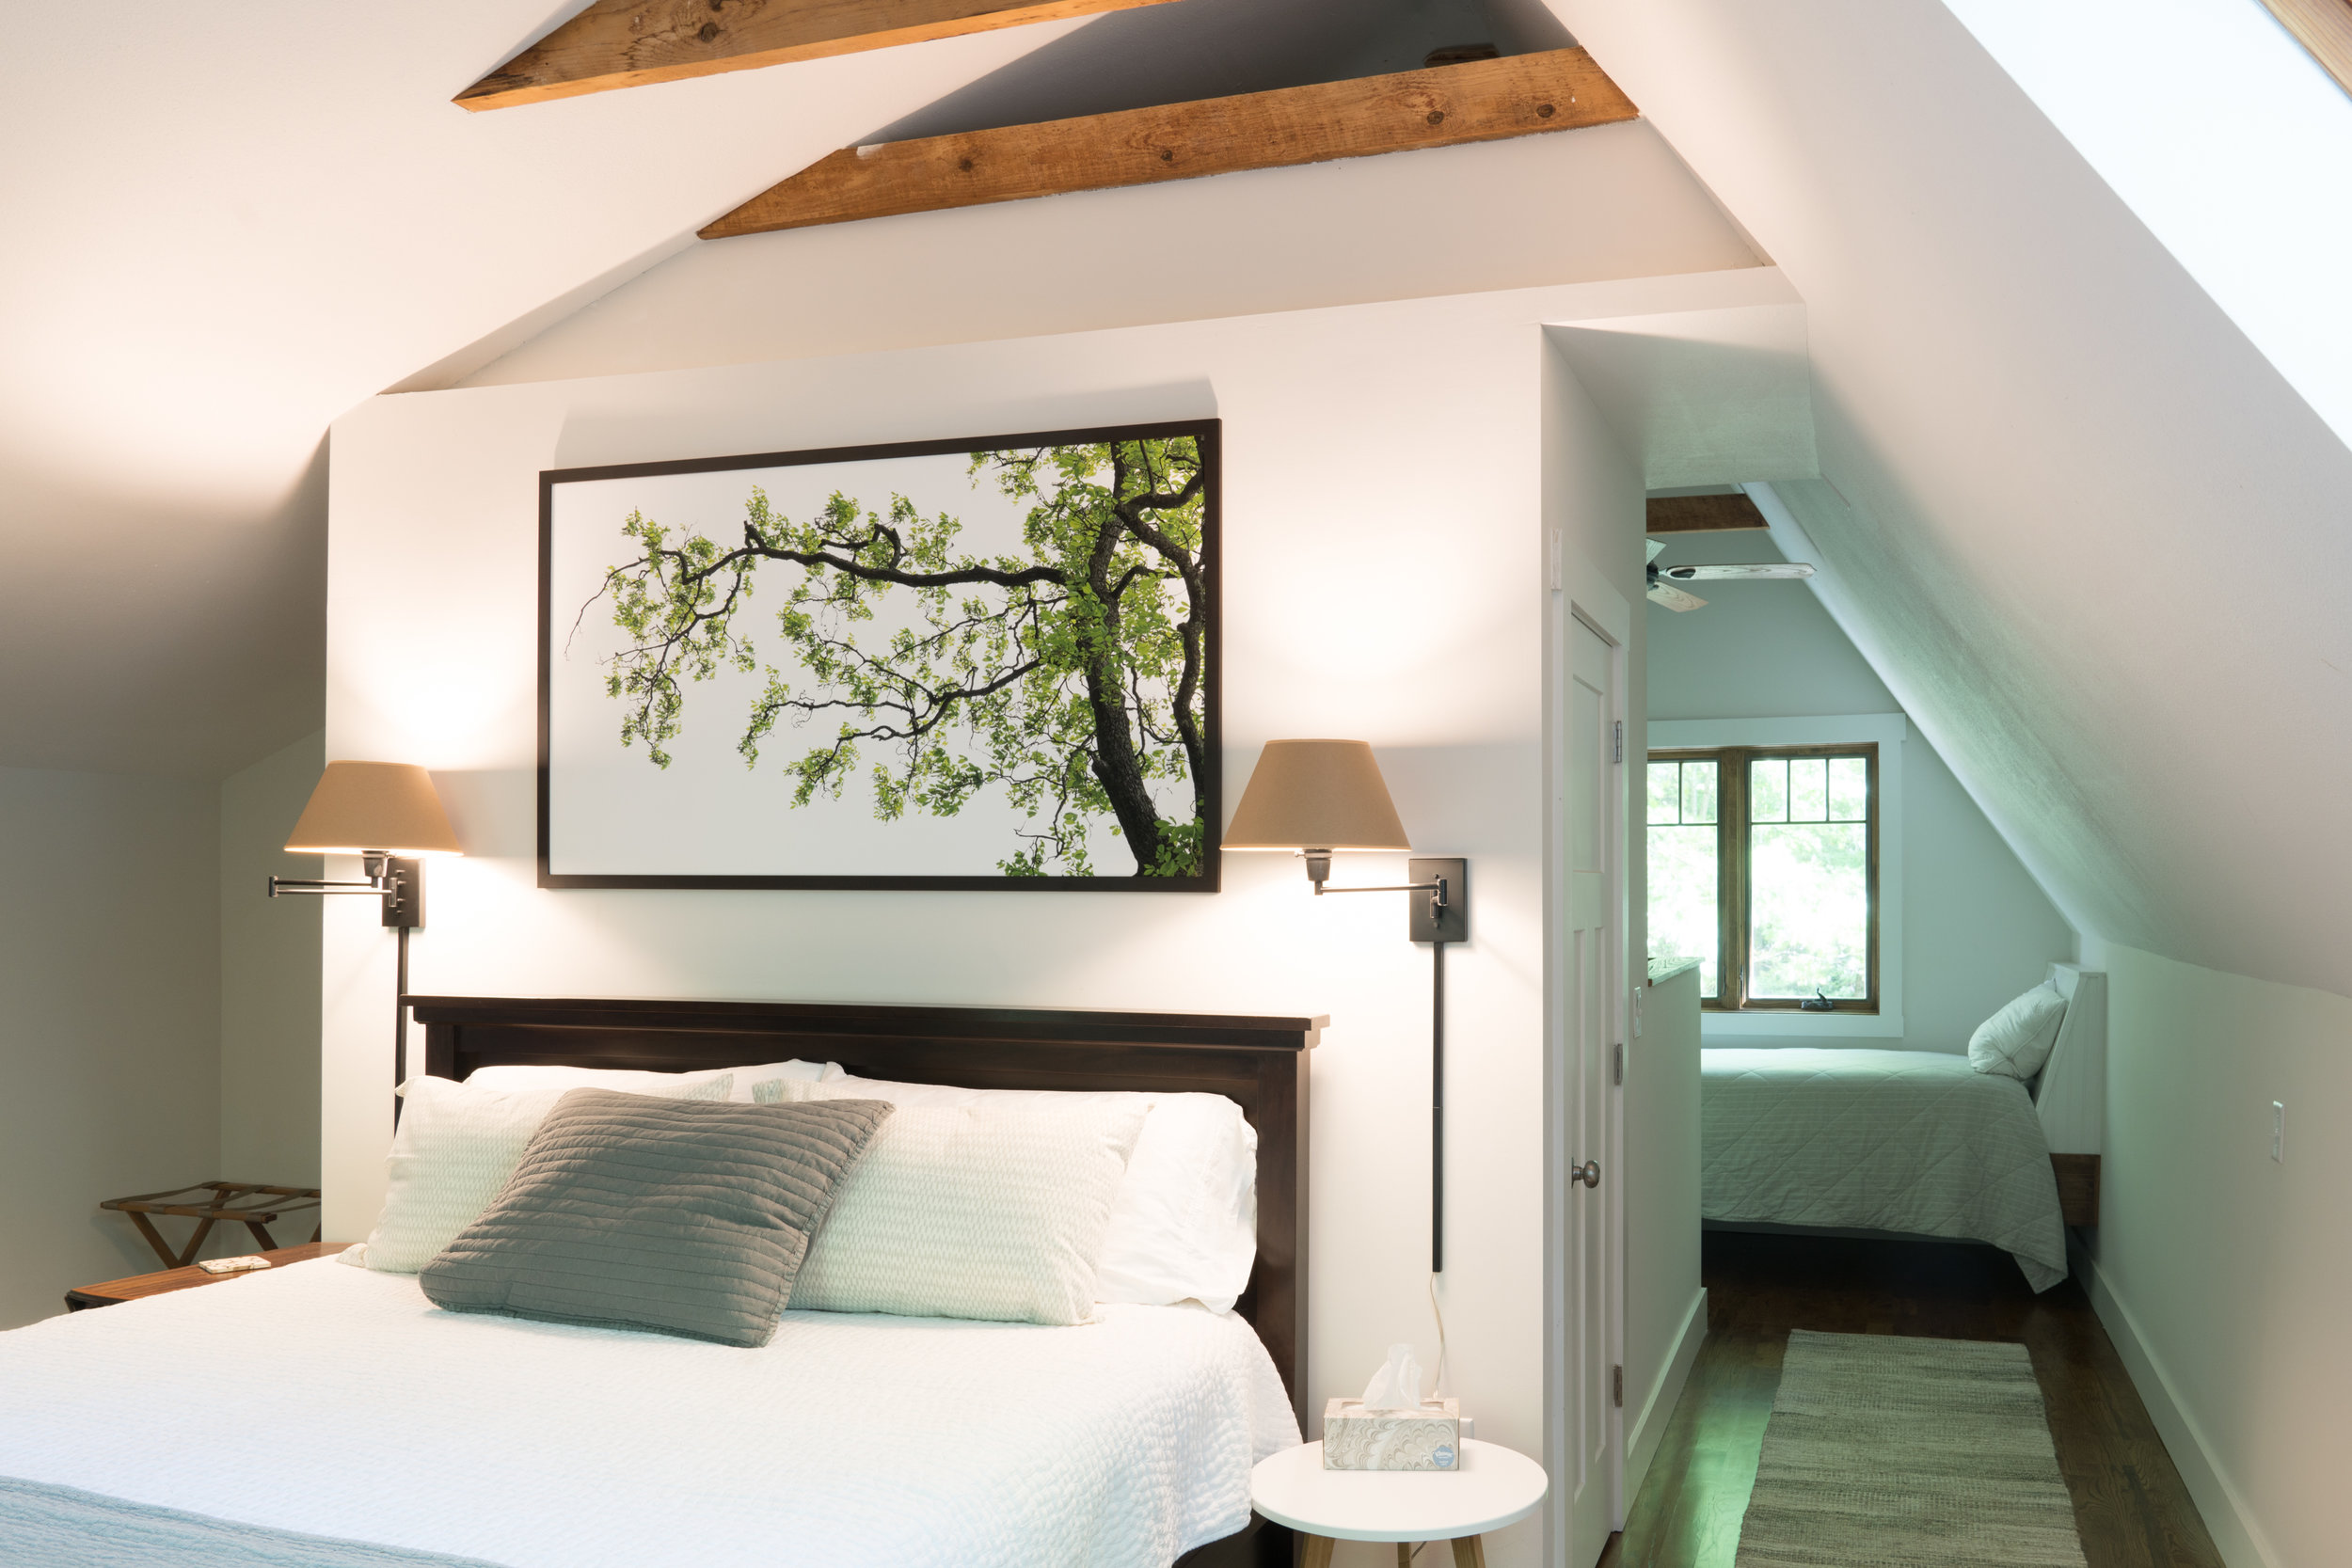 The lovely bedroom with a seriously comfy king bed with large windows allowing the sounds and view of nature. GREAT sleeping…